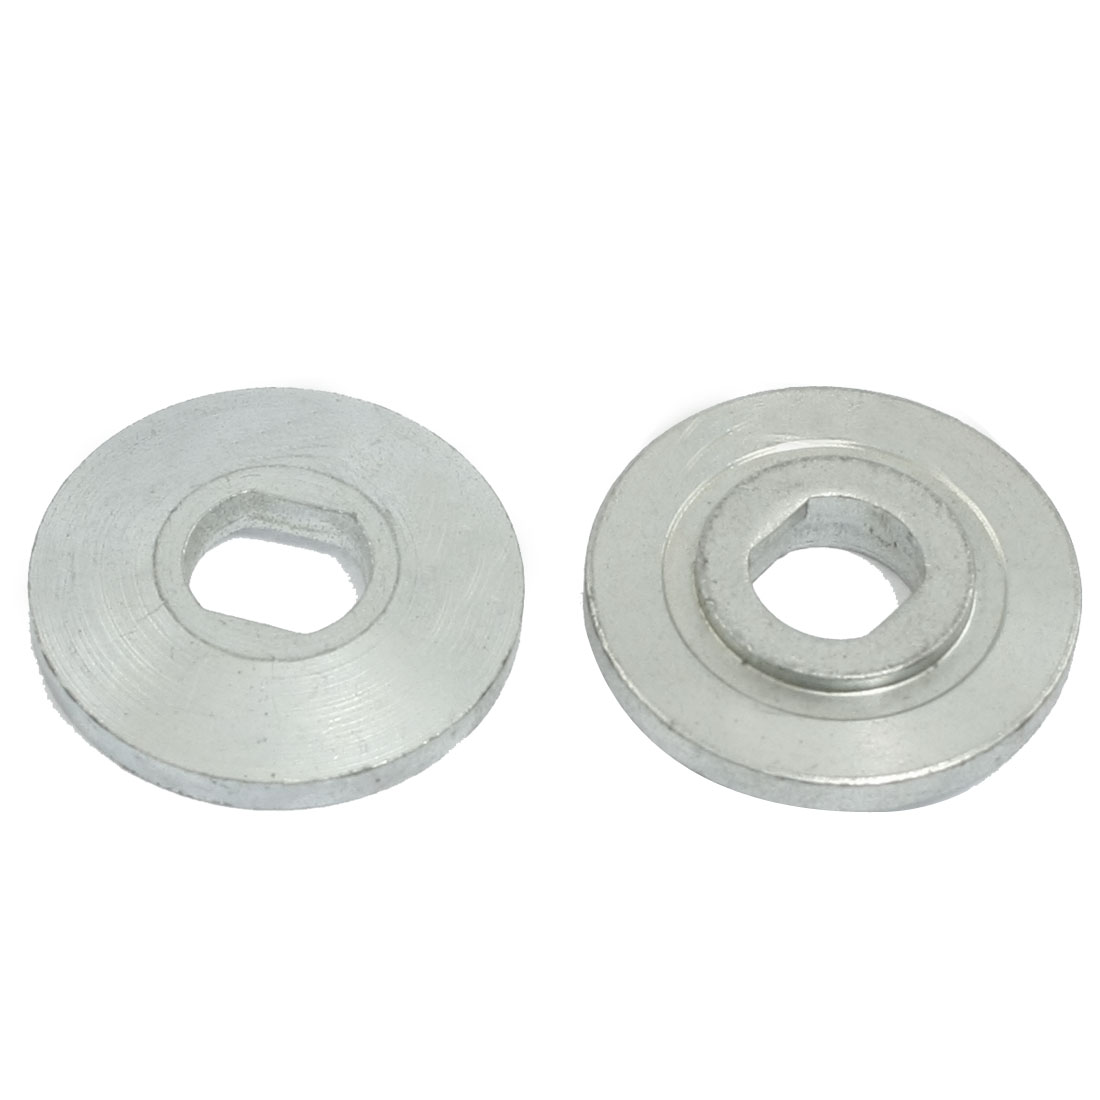 2 Pcs Repairing Part Inner Outer Flange for 1040 Mitre Saw